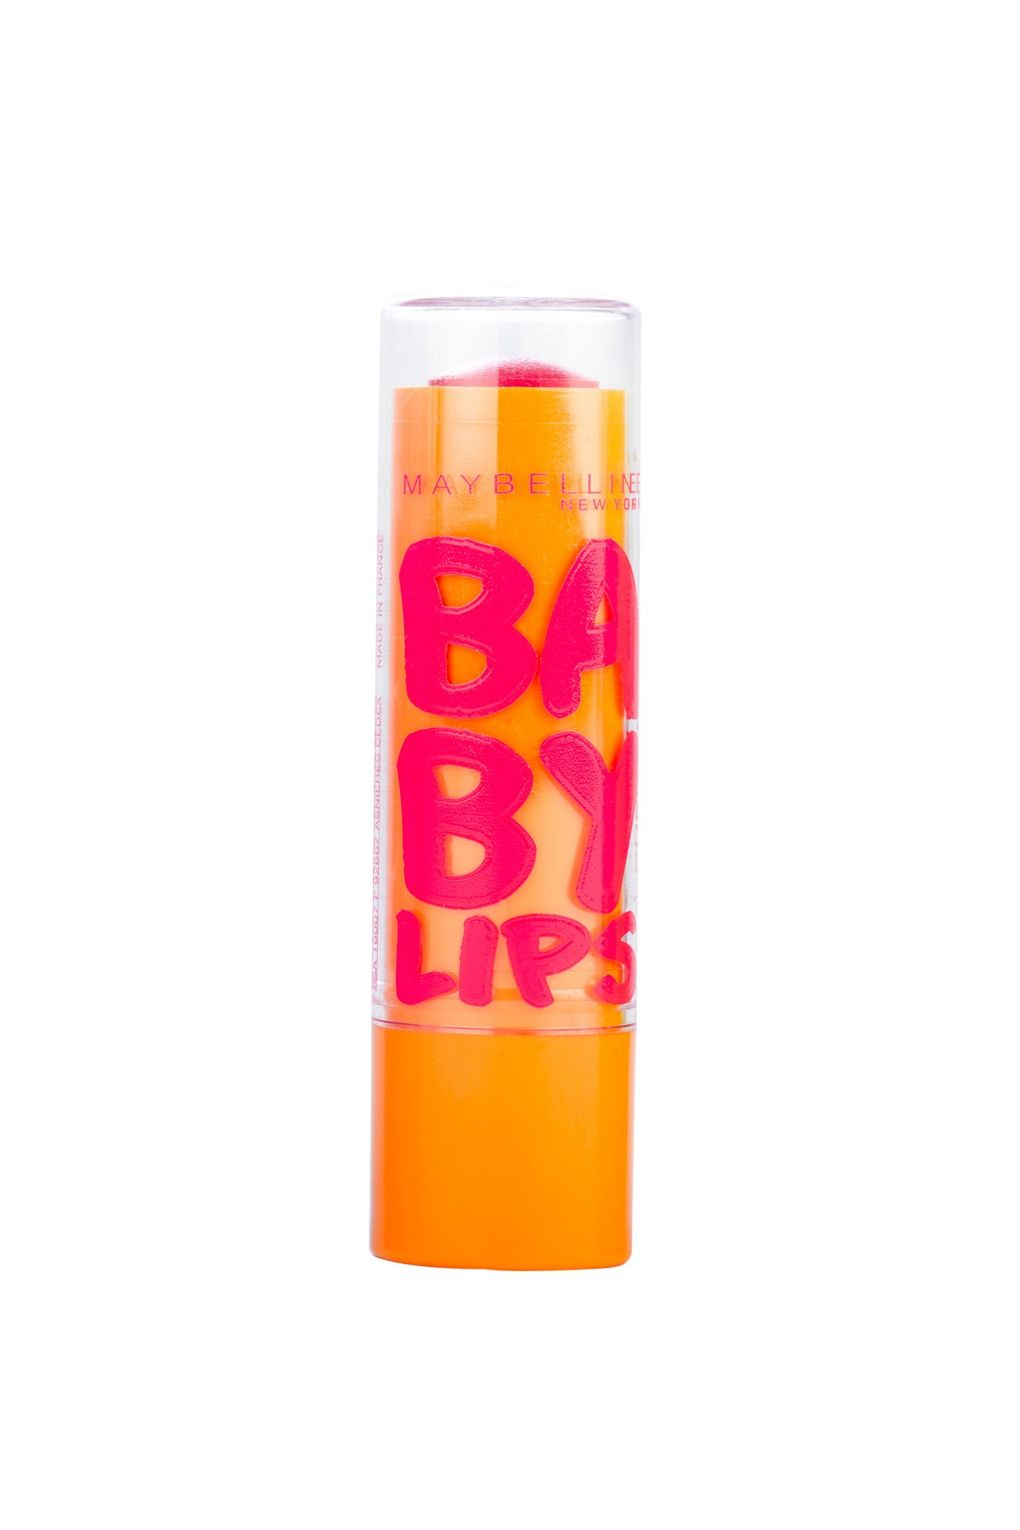 Tinted Lip Balms The Best Tinted Lip Balms Nicestyles